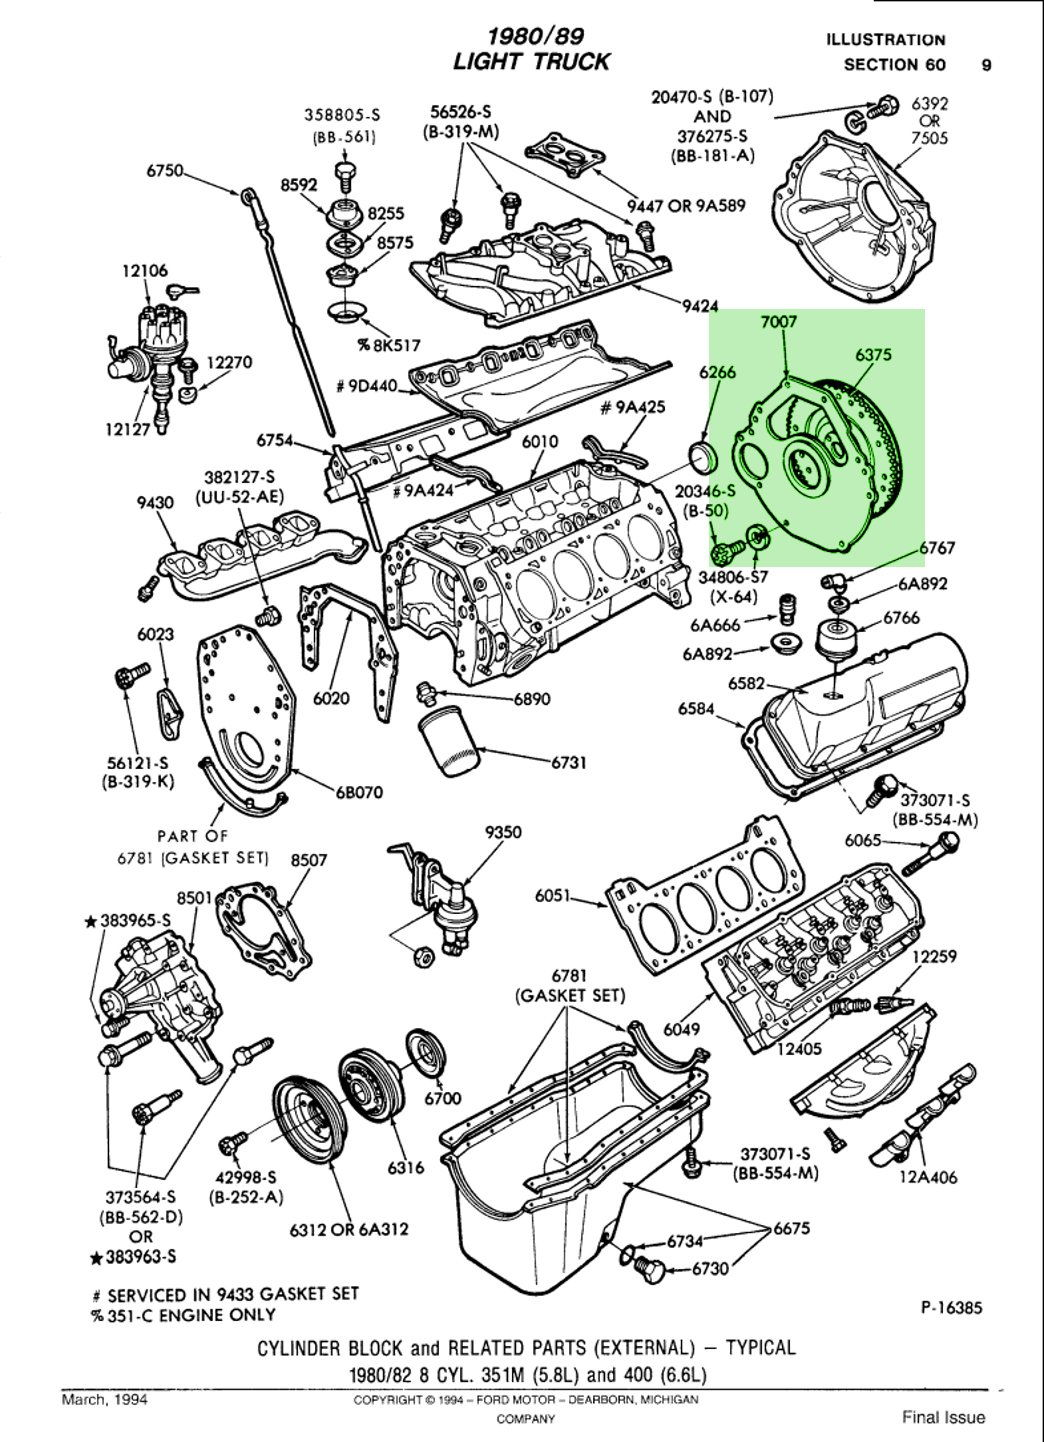 Pontiac Montana Parts Diagram in addition Can Return Line Leak Cause Hard Starting 188130 moreover 4 8 Silverado Engine Diagram furthermore Trio Of New Ecotec Engines Powers Silverado And Sierra Gm 5 3 Liter Belt Diagram as well 88 Gmc Safari Engine Diagram. on 2000 gmc vortec serpentine belt diagram